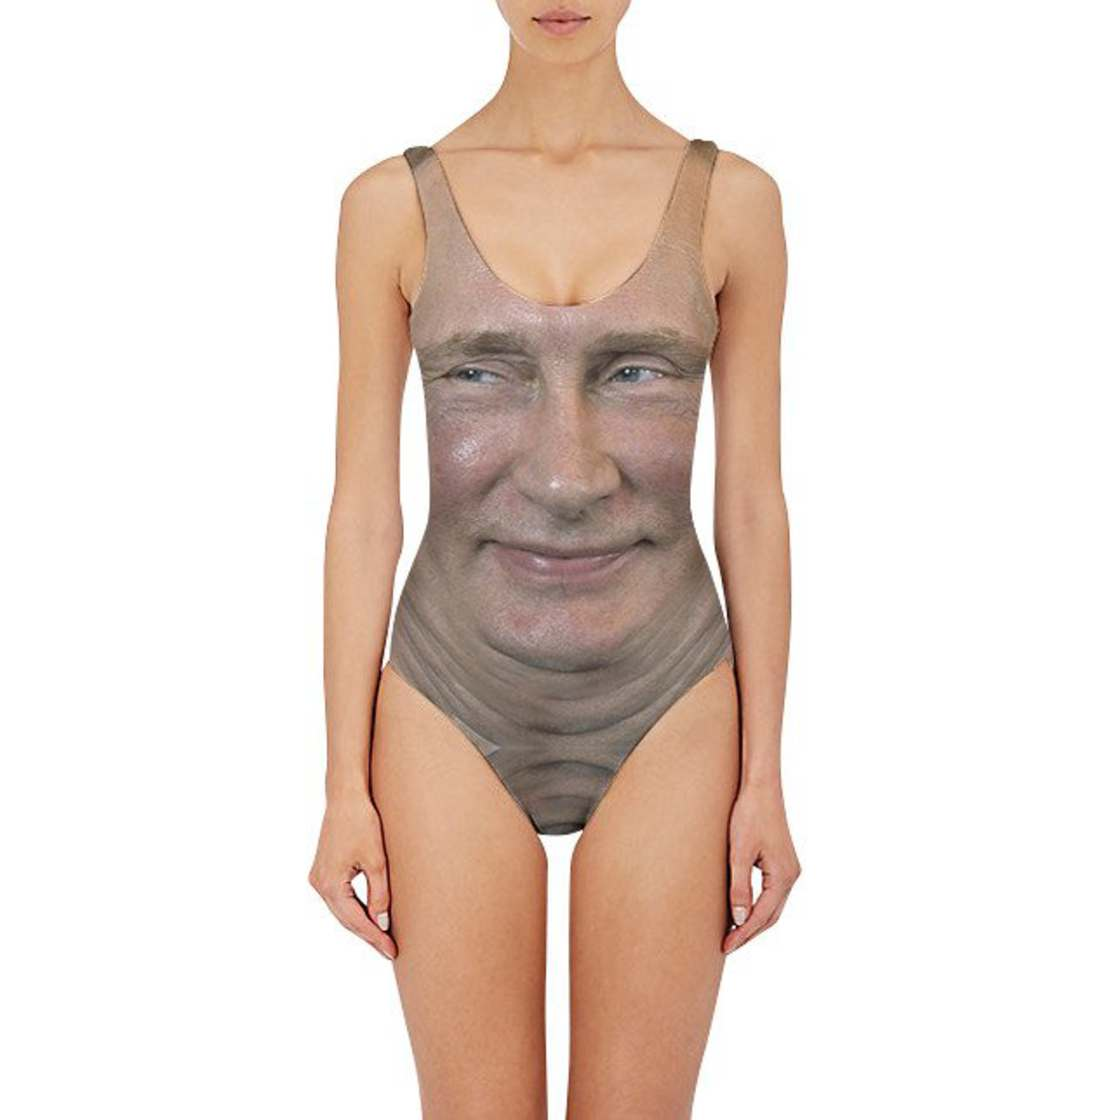 Weird swimsuits with Donald Trump, Hilary Clinton or Vladimir Putin?